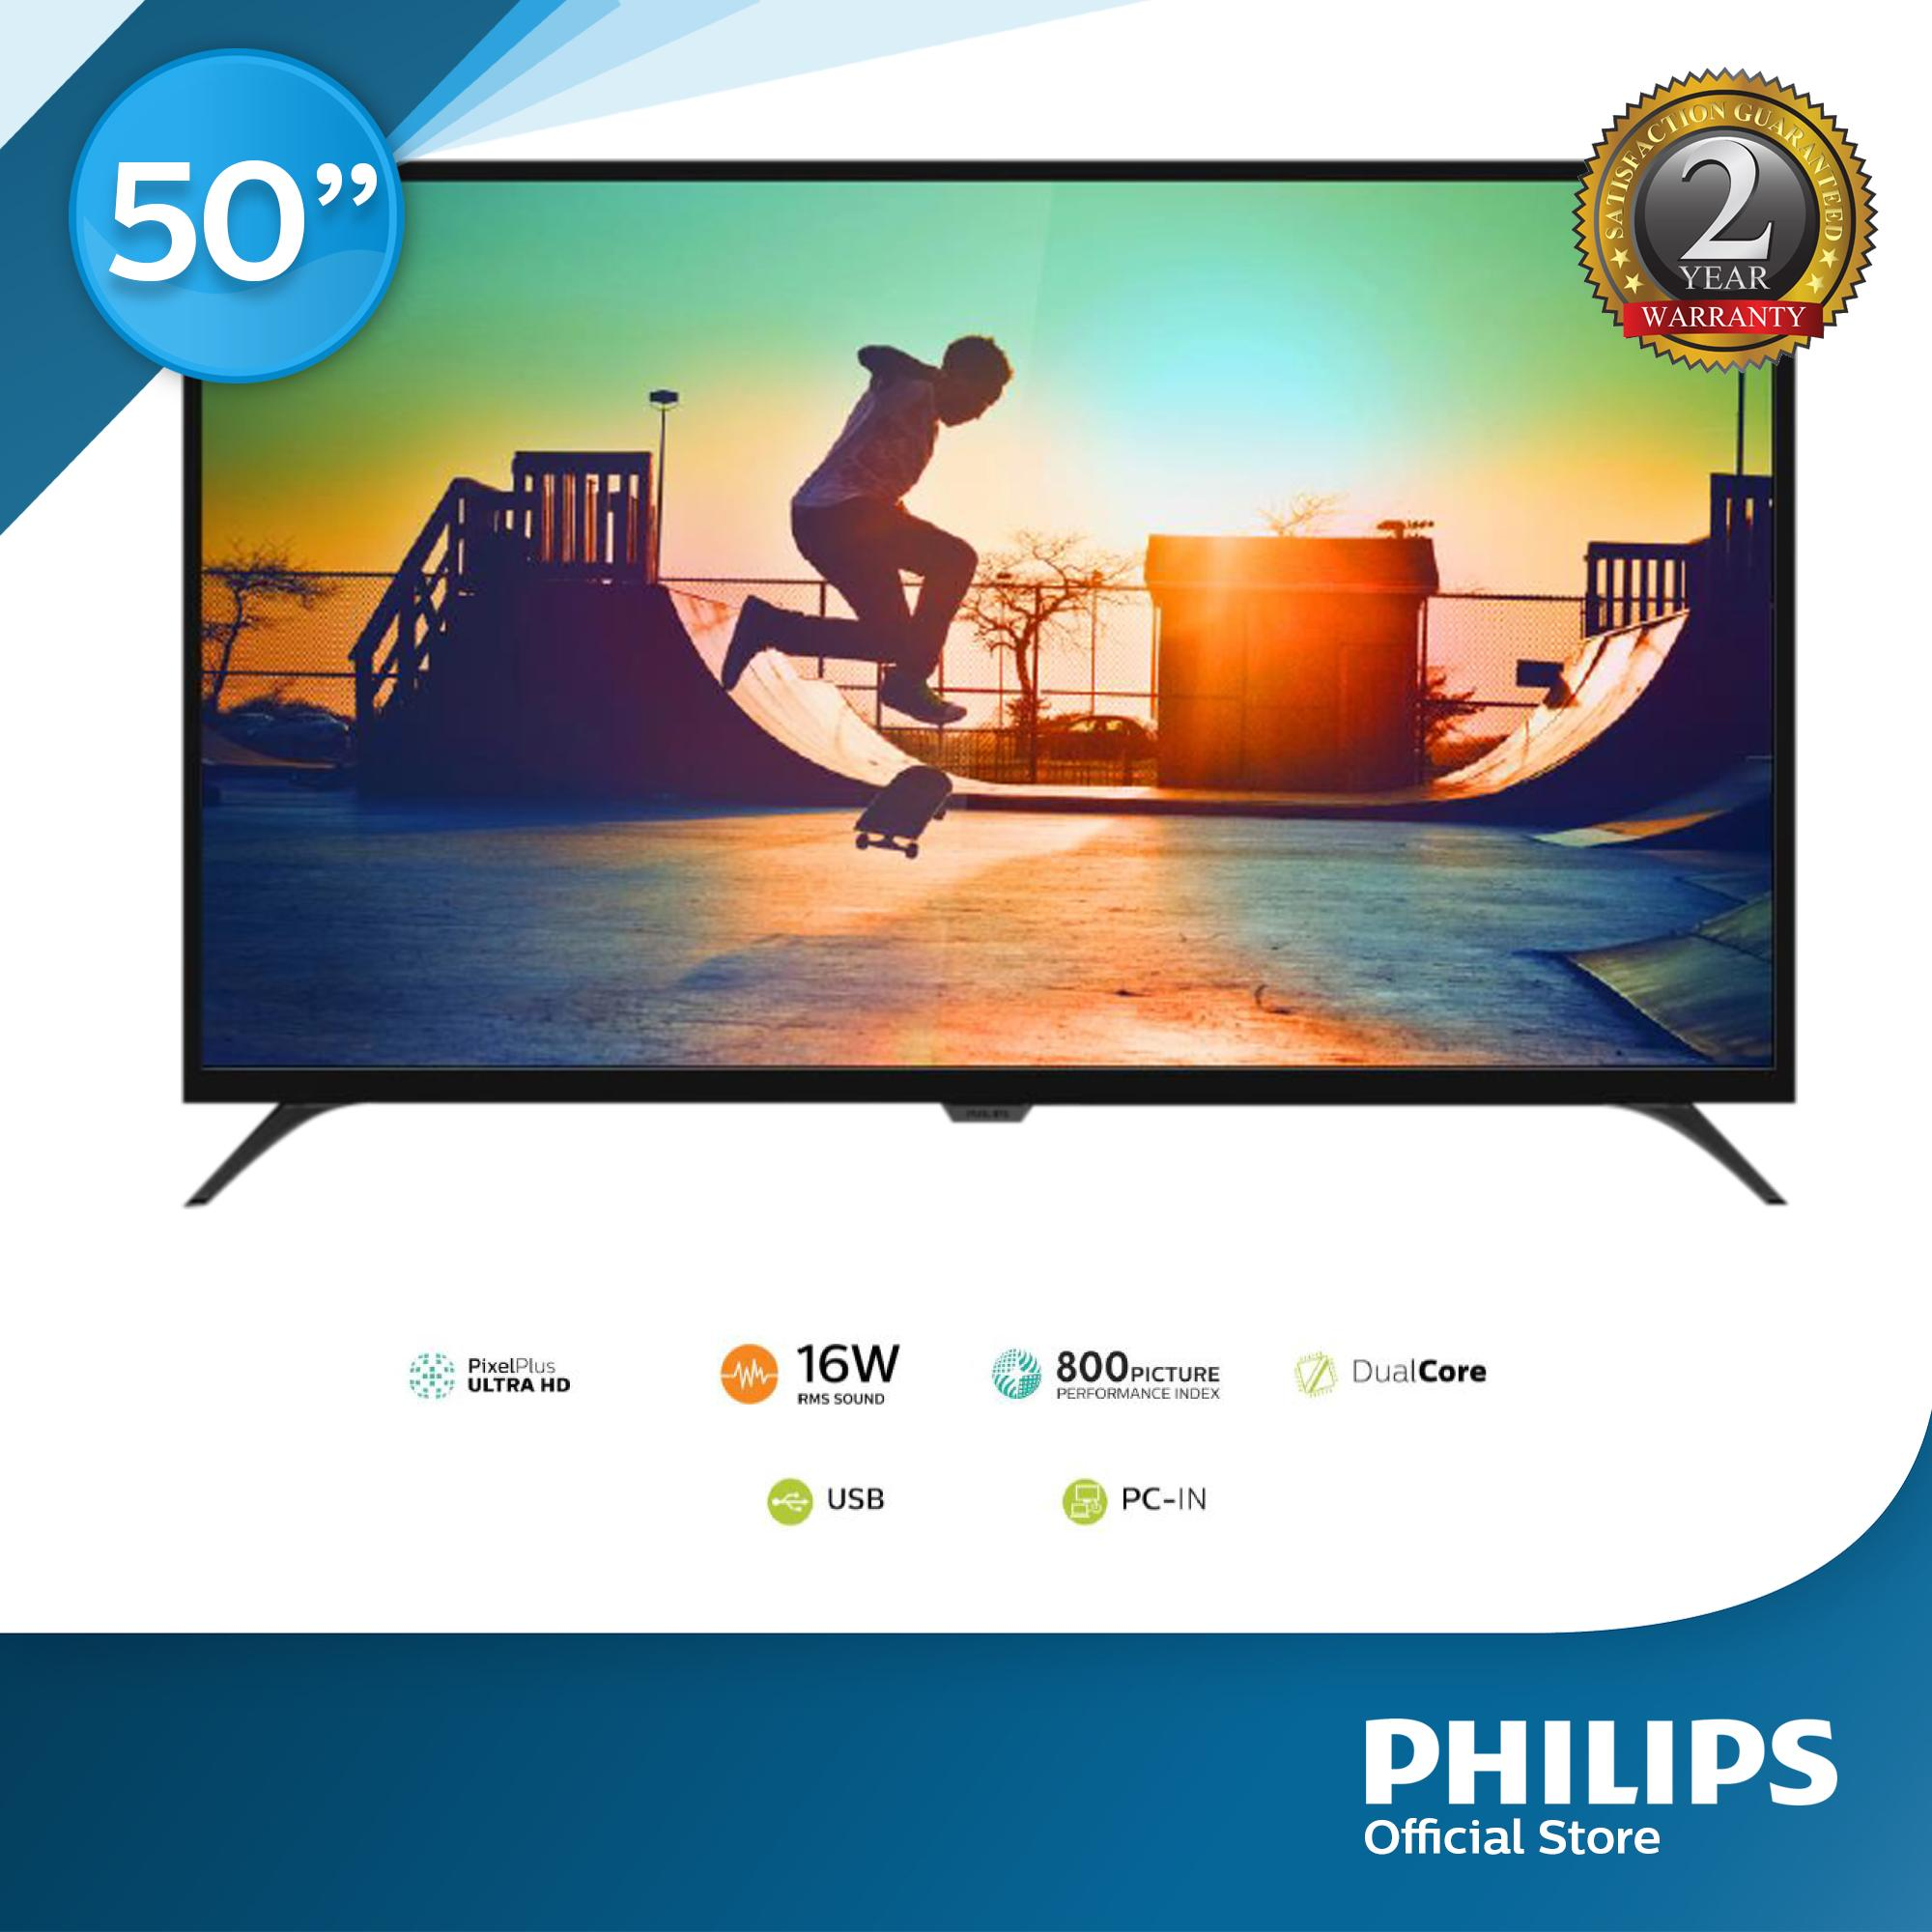 Philips LED TV 50PUT6022 4K Ultra with Pixel Plus Ultra HD